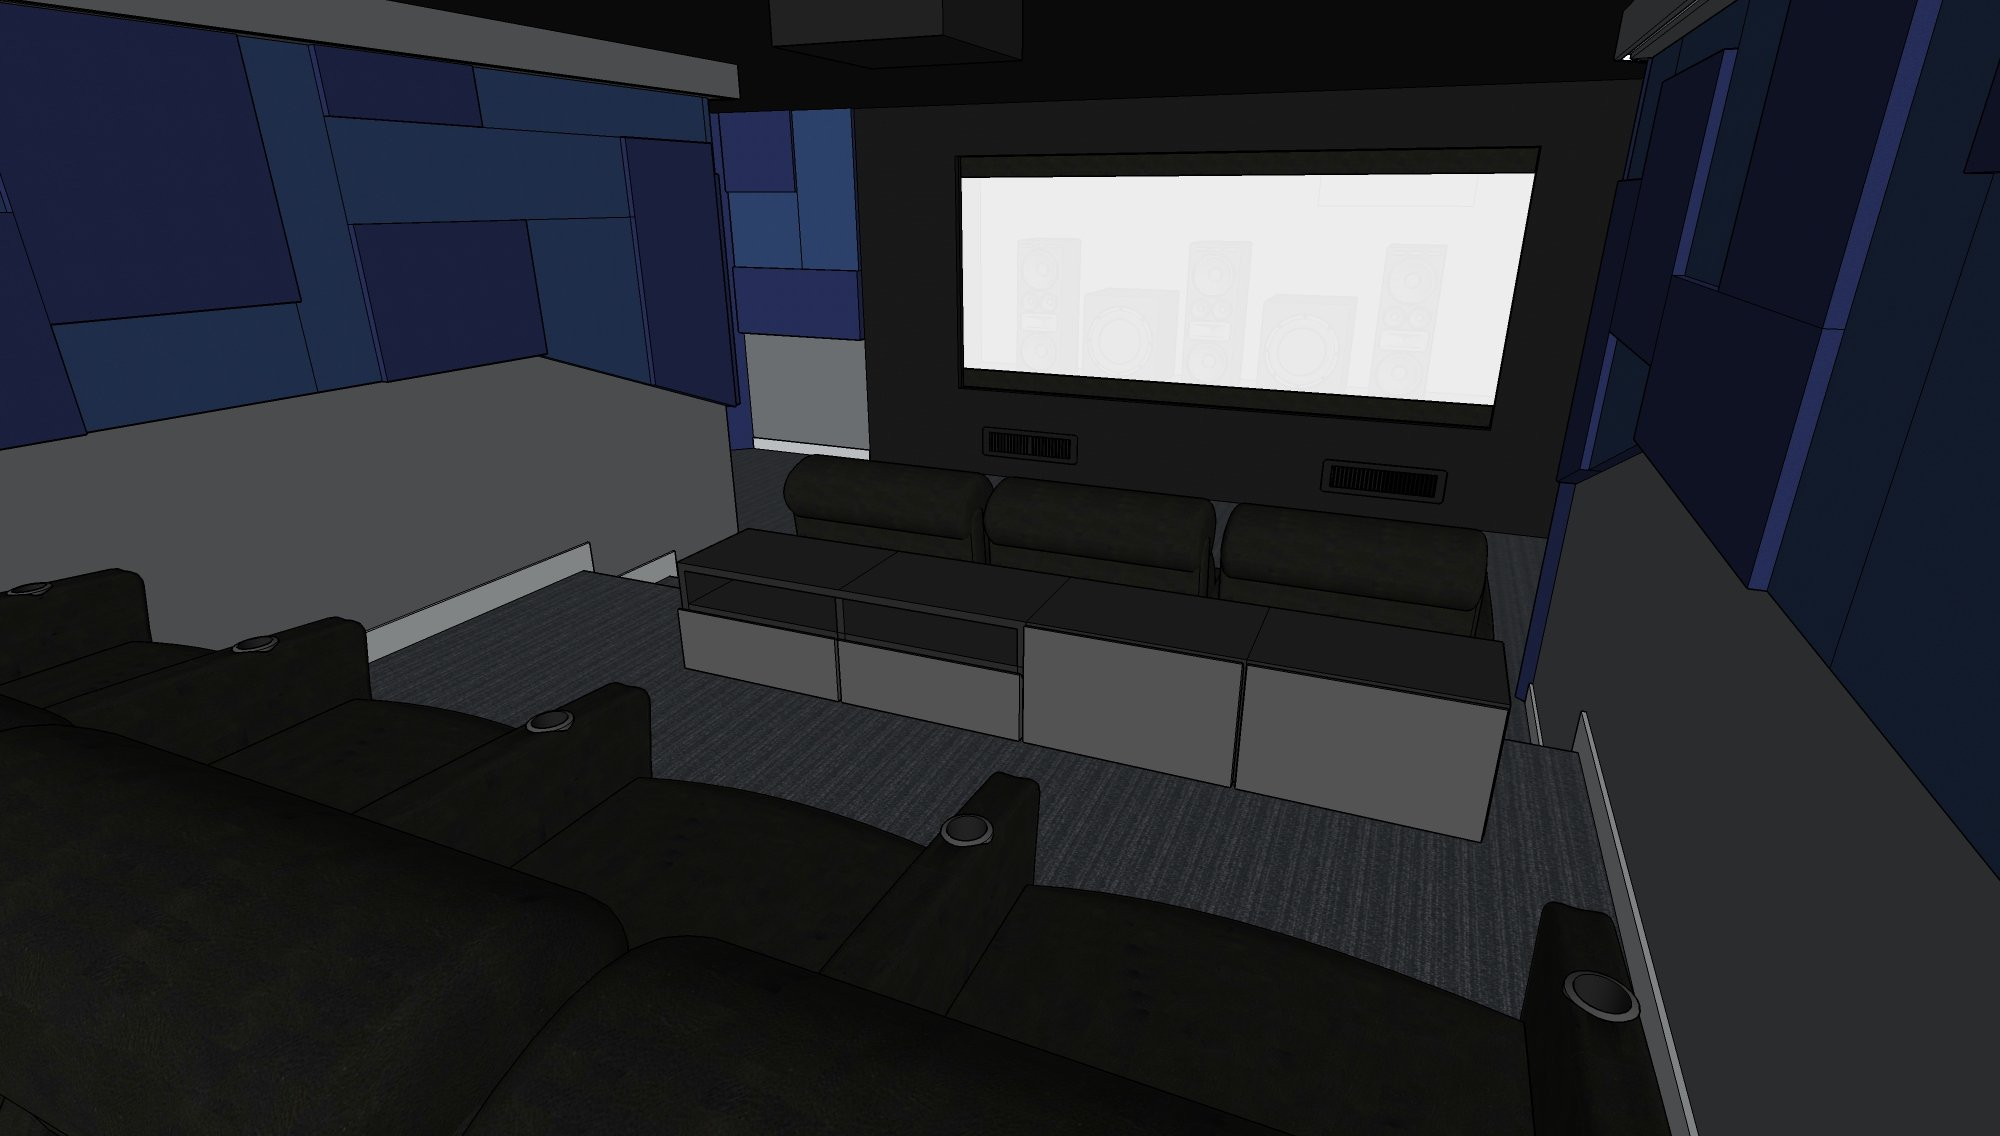 Click image for larger version  Name:Blue Room Theater Back.jpg Views:58 Size:720.0 KB ID:2567448